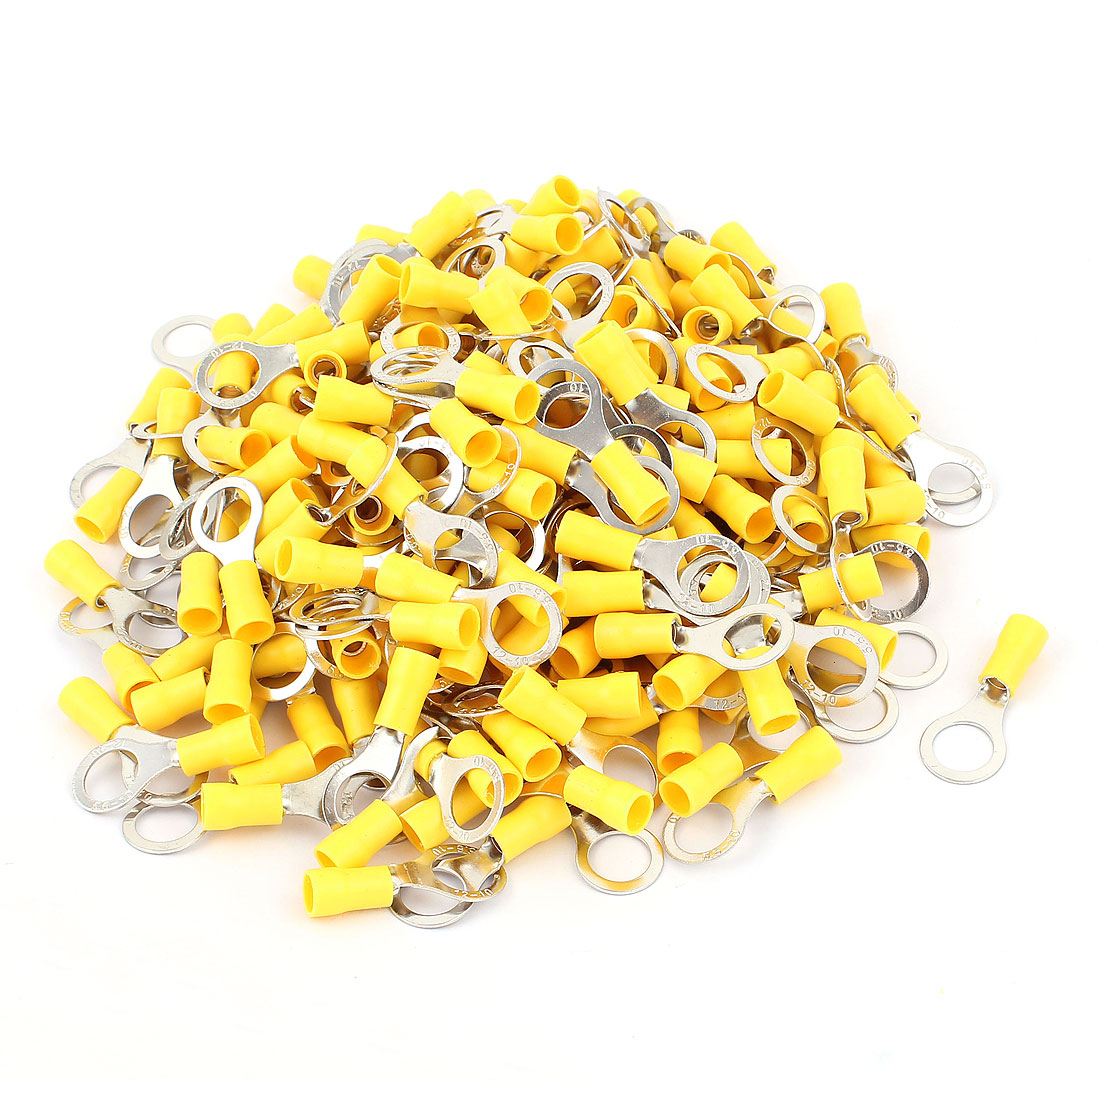 220pcs Cable Connector Pre-Insulated Ring Terminal RV5.5-10 for AWG 12-10 Wire